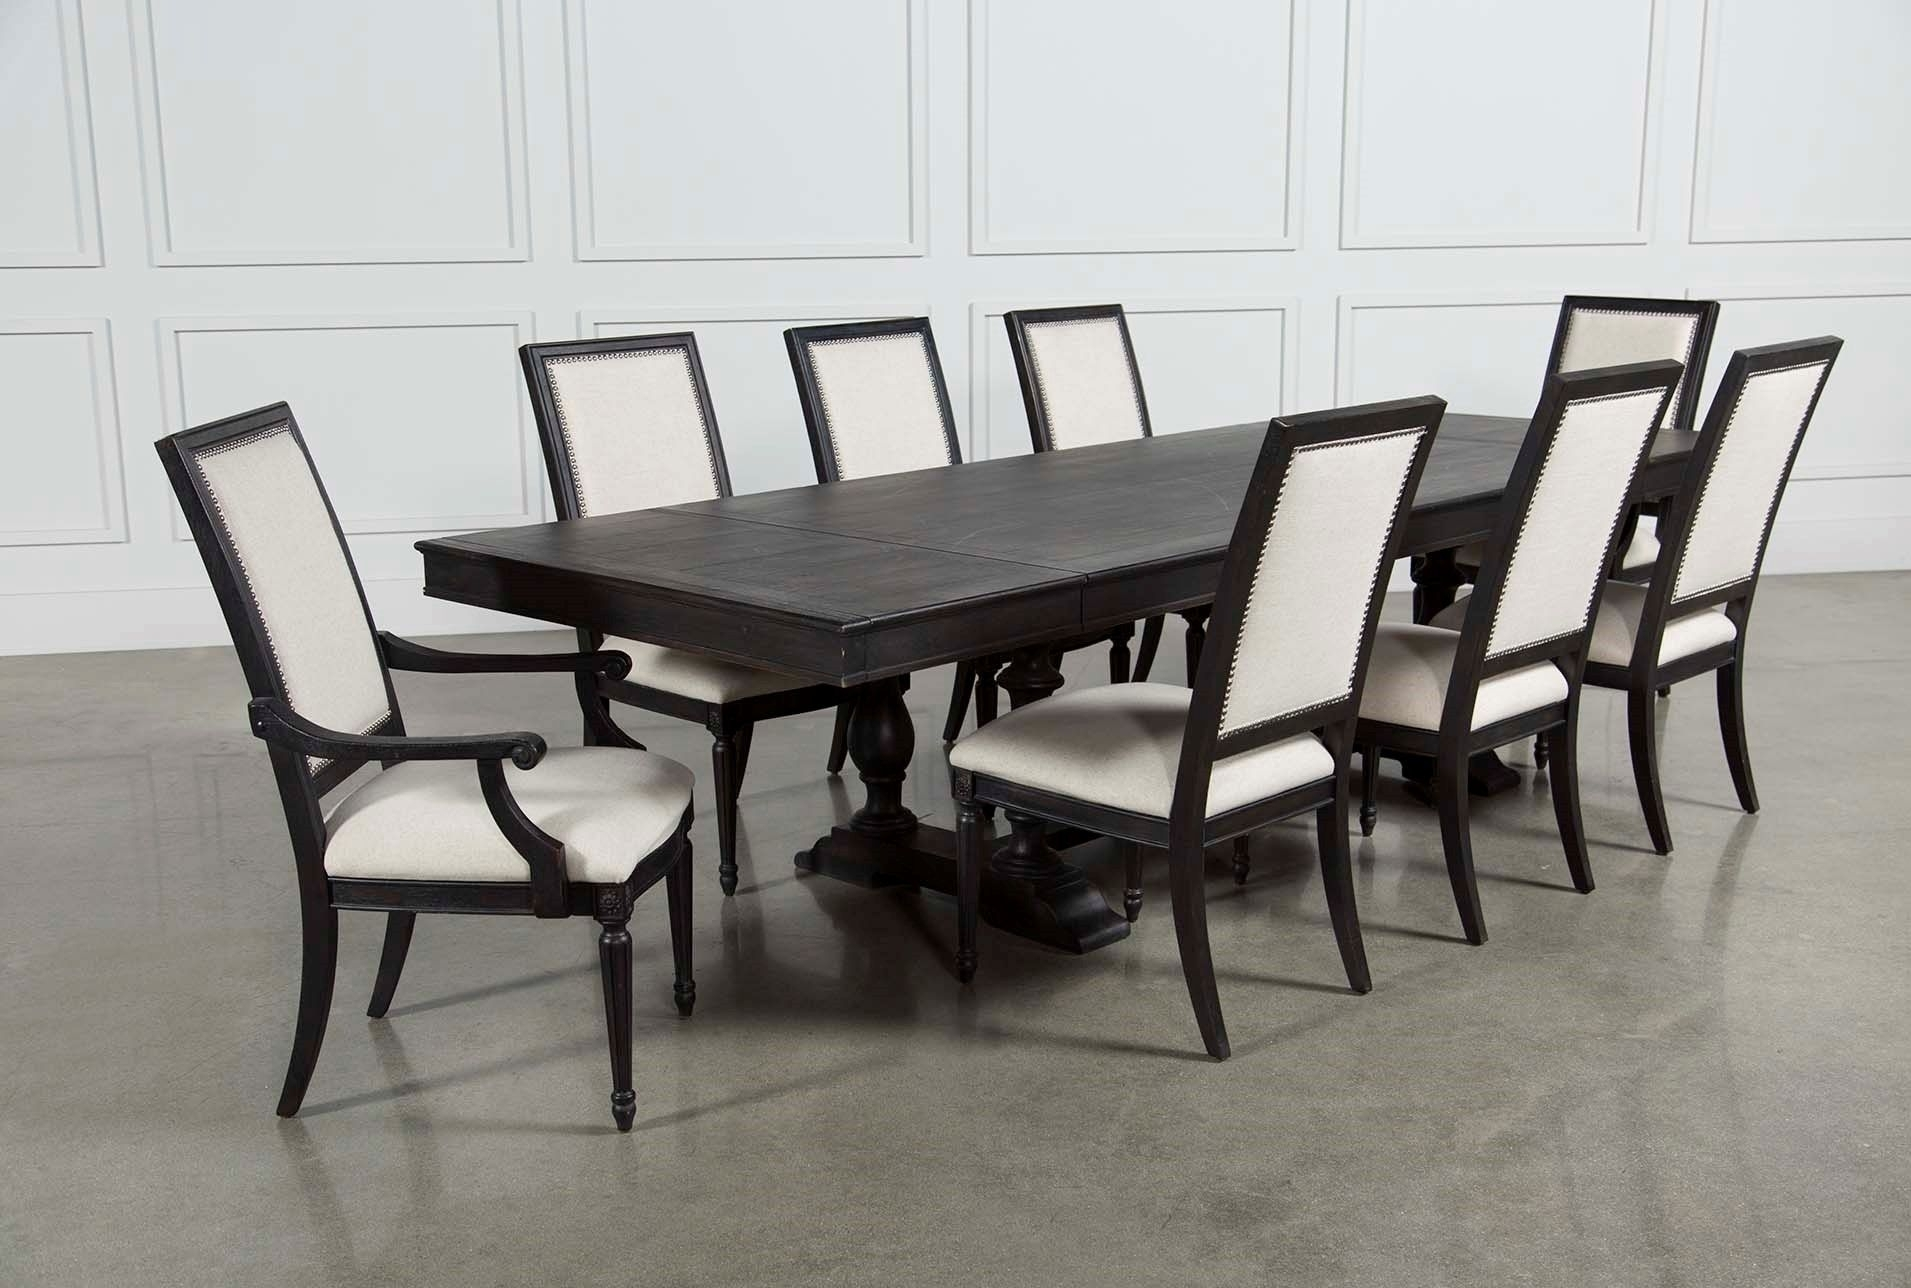 Chapleau 9 Piece Extension Dining Set, Brown (View 4 of 20)